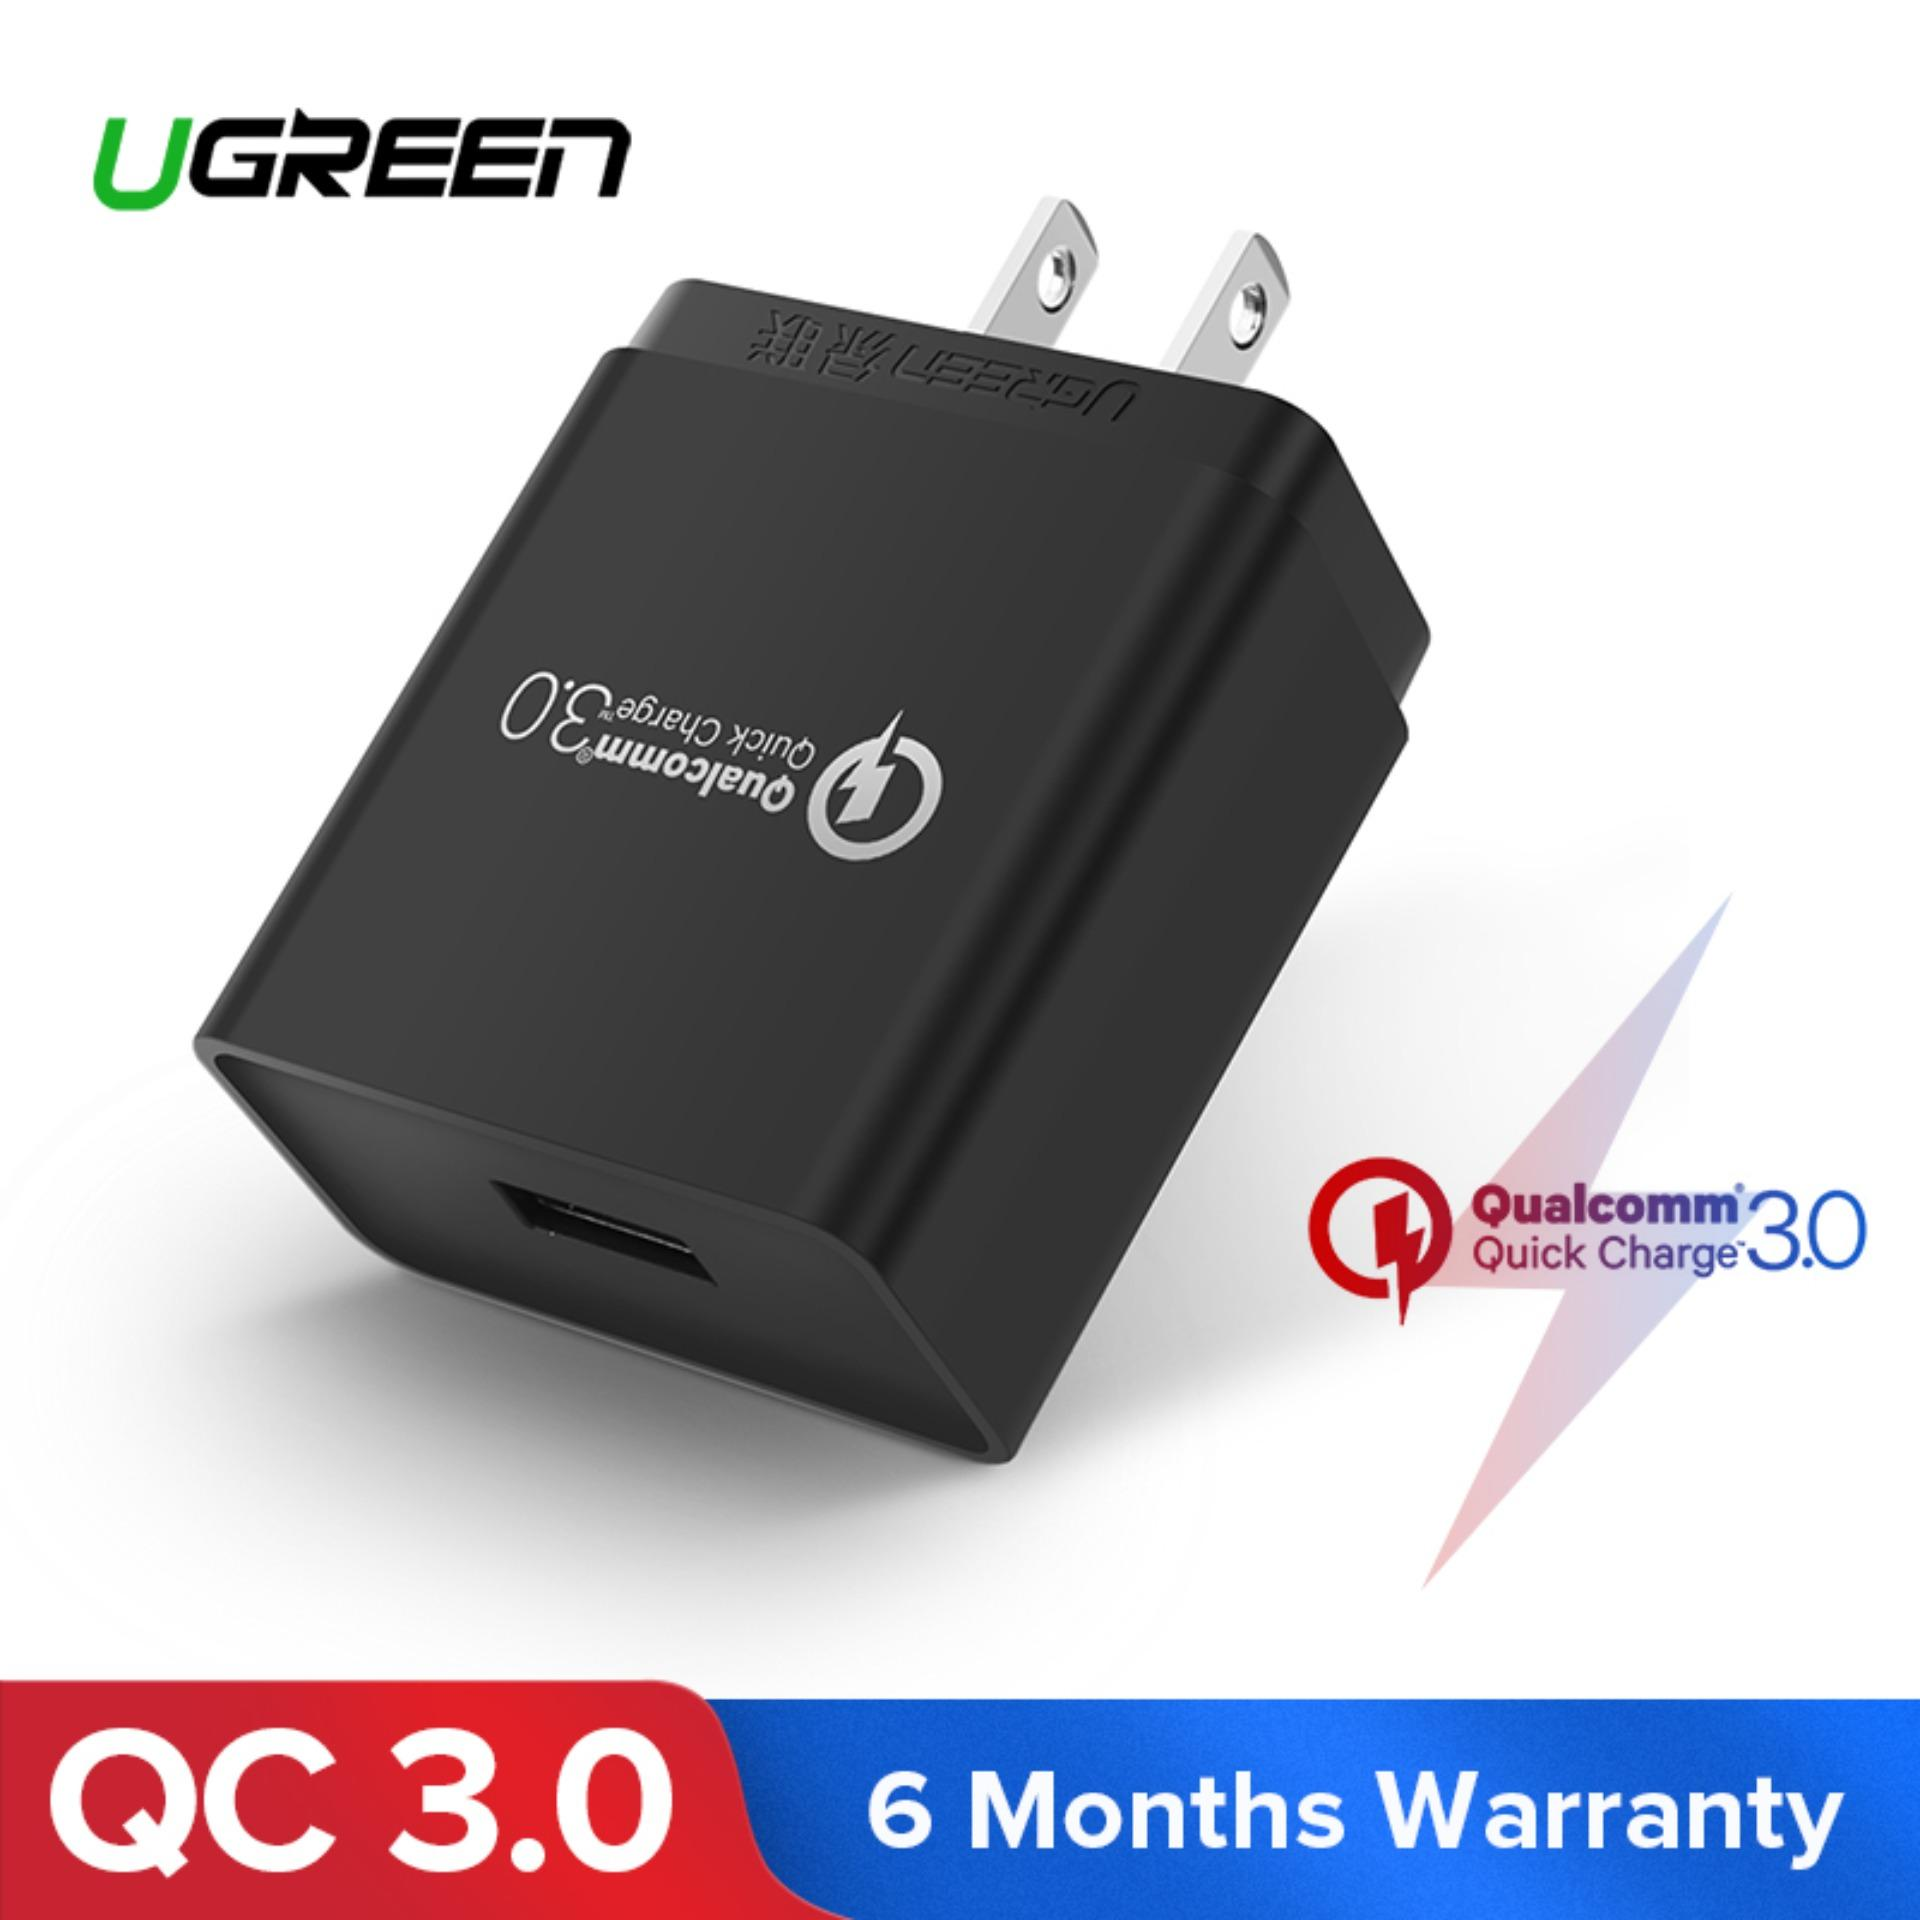 UGREEN Quick Charge QC 3 0 USB Wall Charger, 18W Fast Rapid Wall Charger  RedMi Note 7 Samsung S8 S9 S7 Note8/Note 9 S6 Note 5, LG V30 V20 G6 Stylo  3,